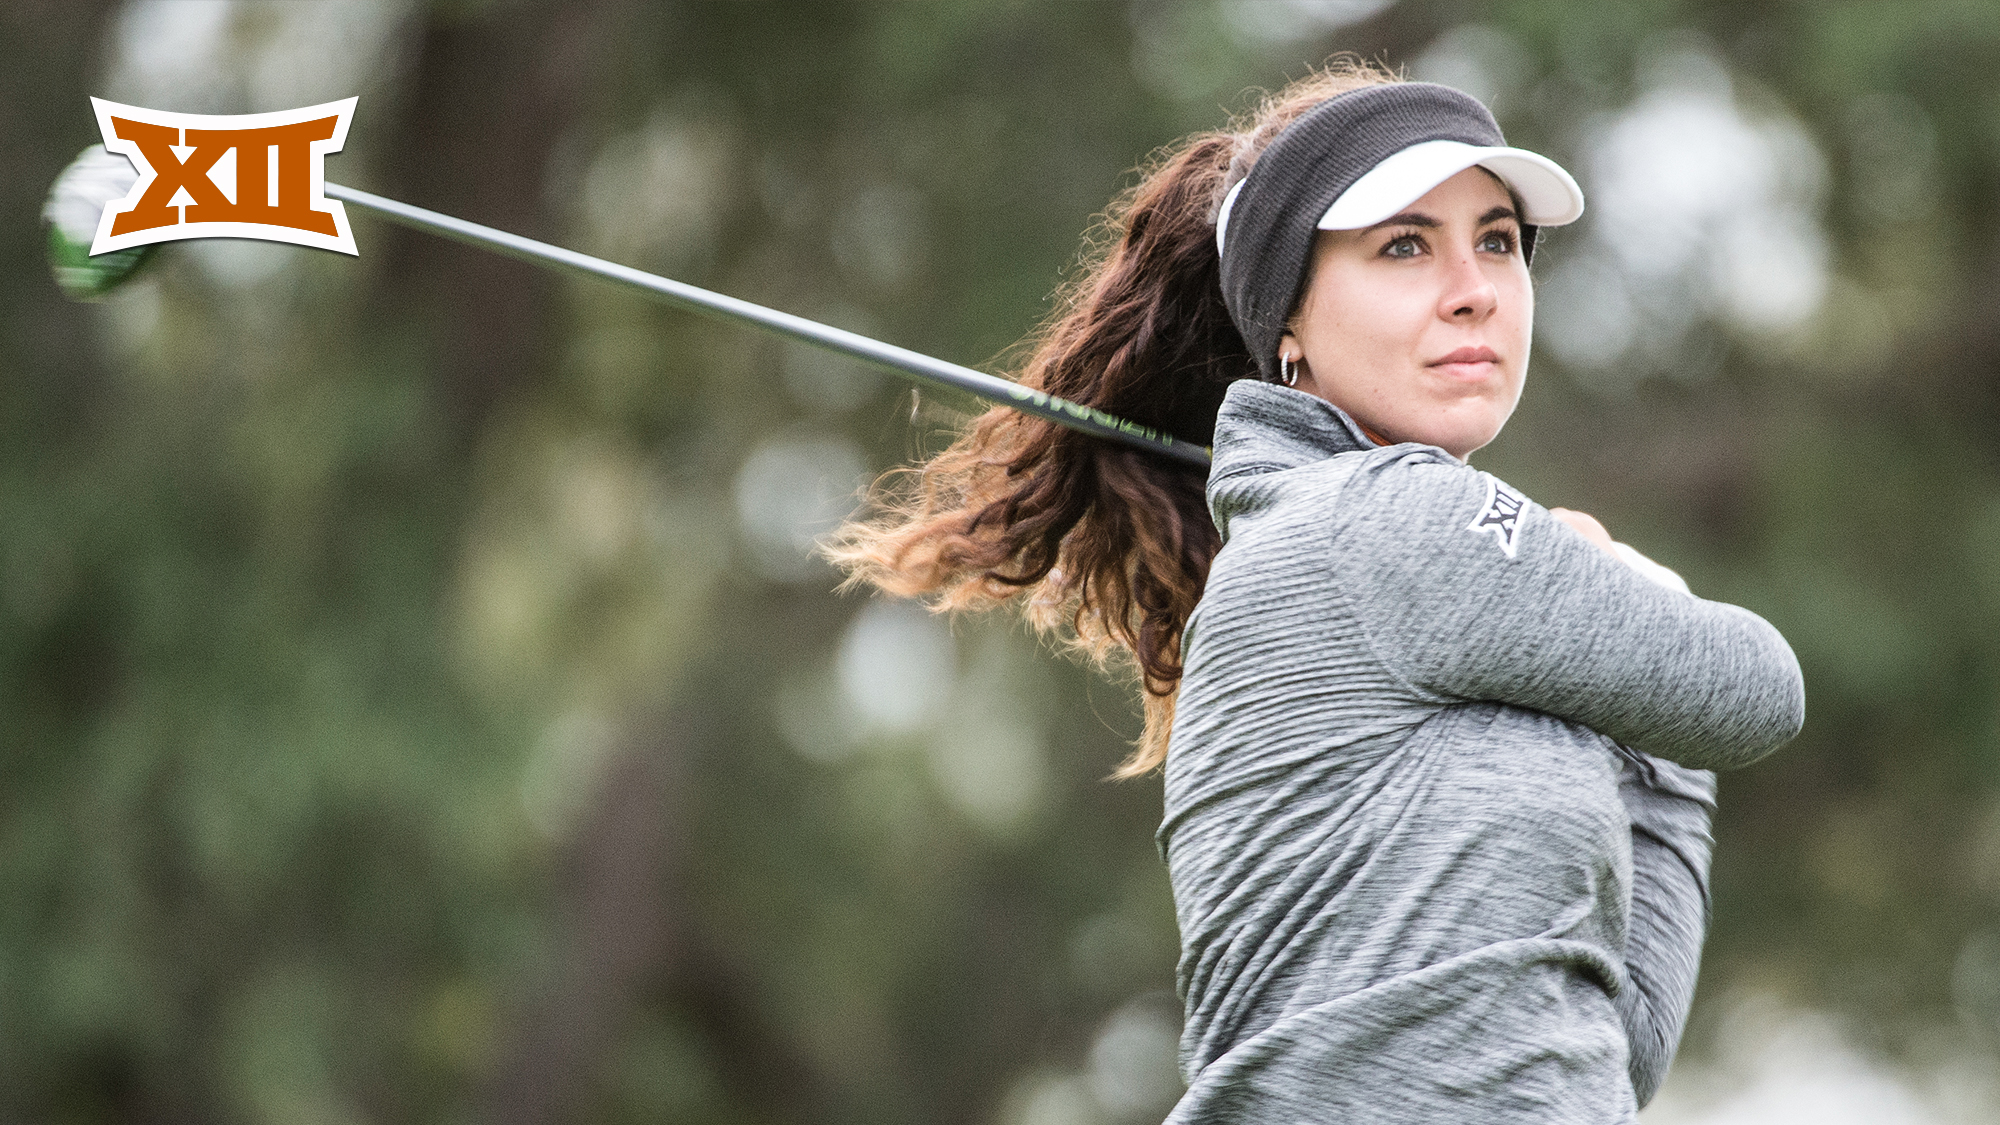 No 11 Women s Golf Preview Dick McGuire Invitational